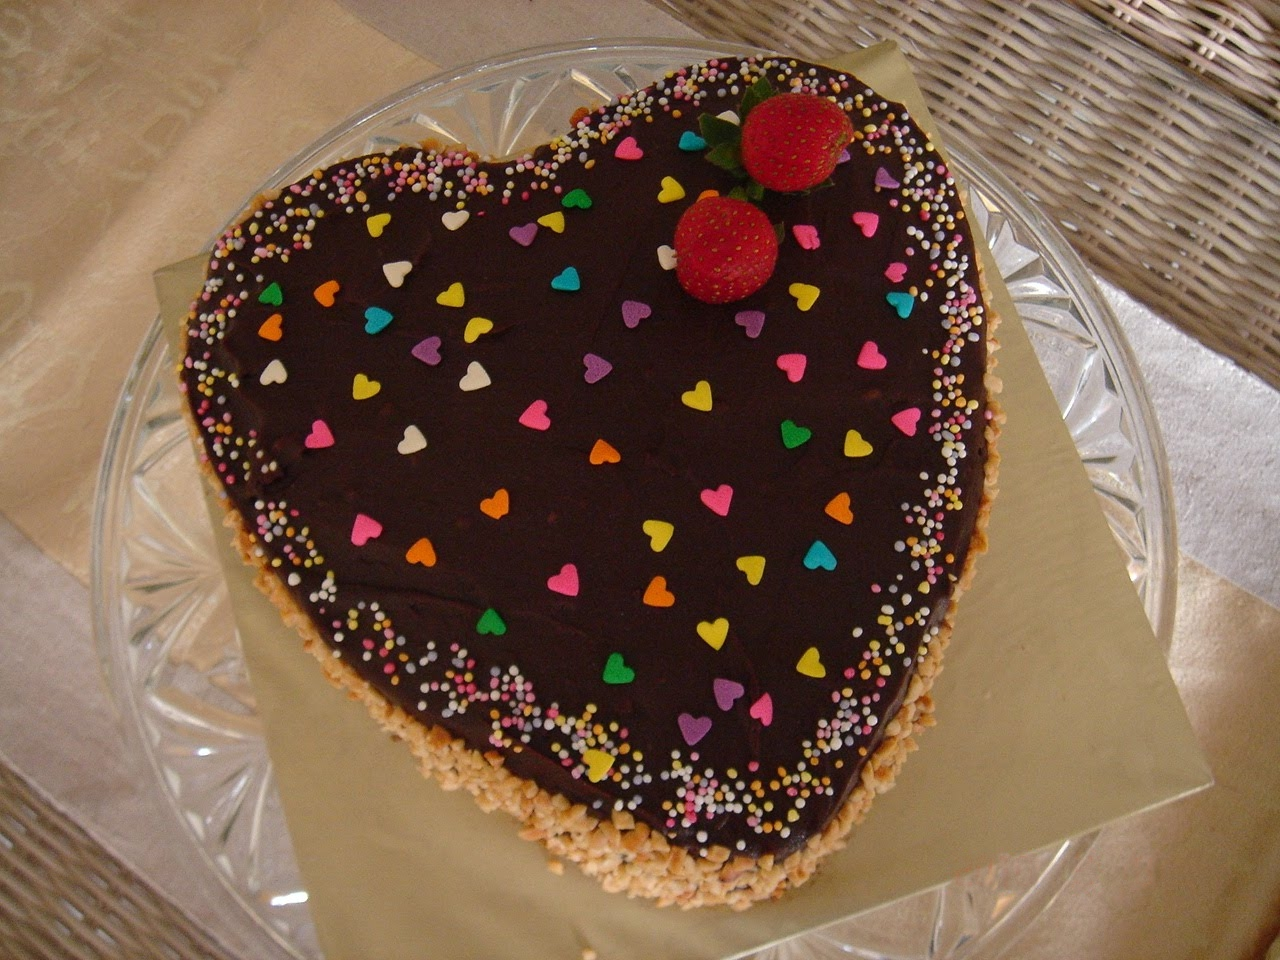 Heart Chocolate Cake Images : Heart Shaped Chocolate Cake Chocolate Cake Gifts